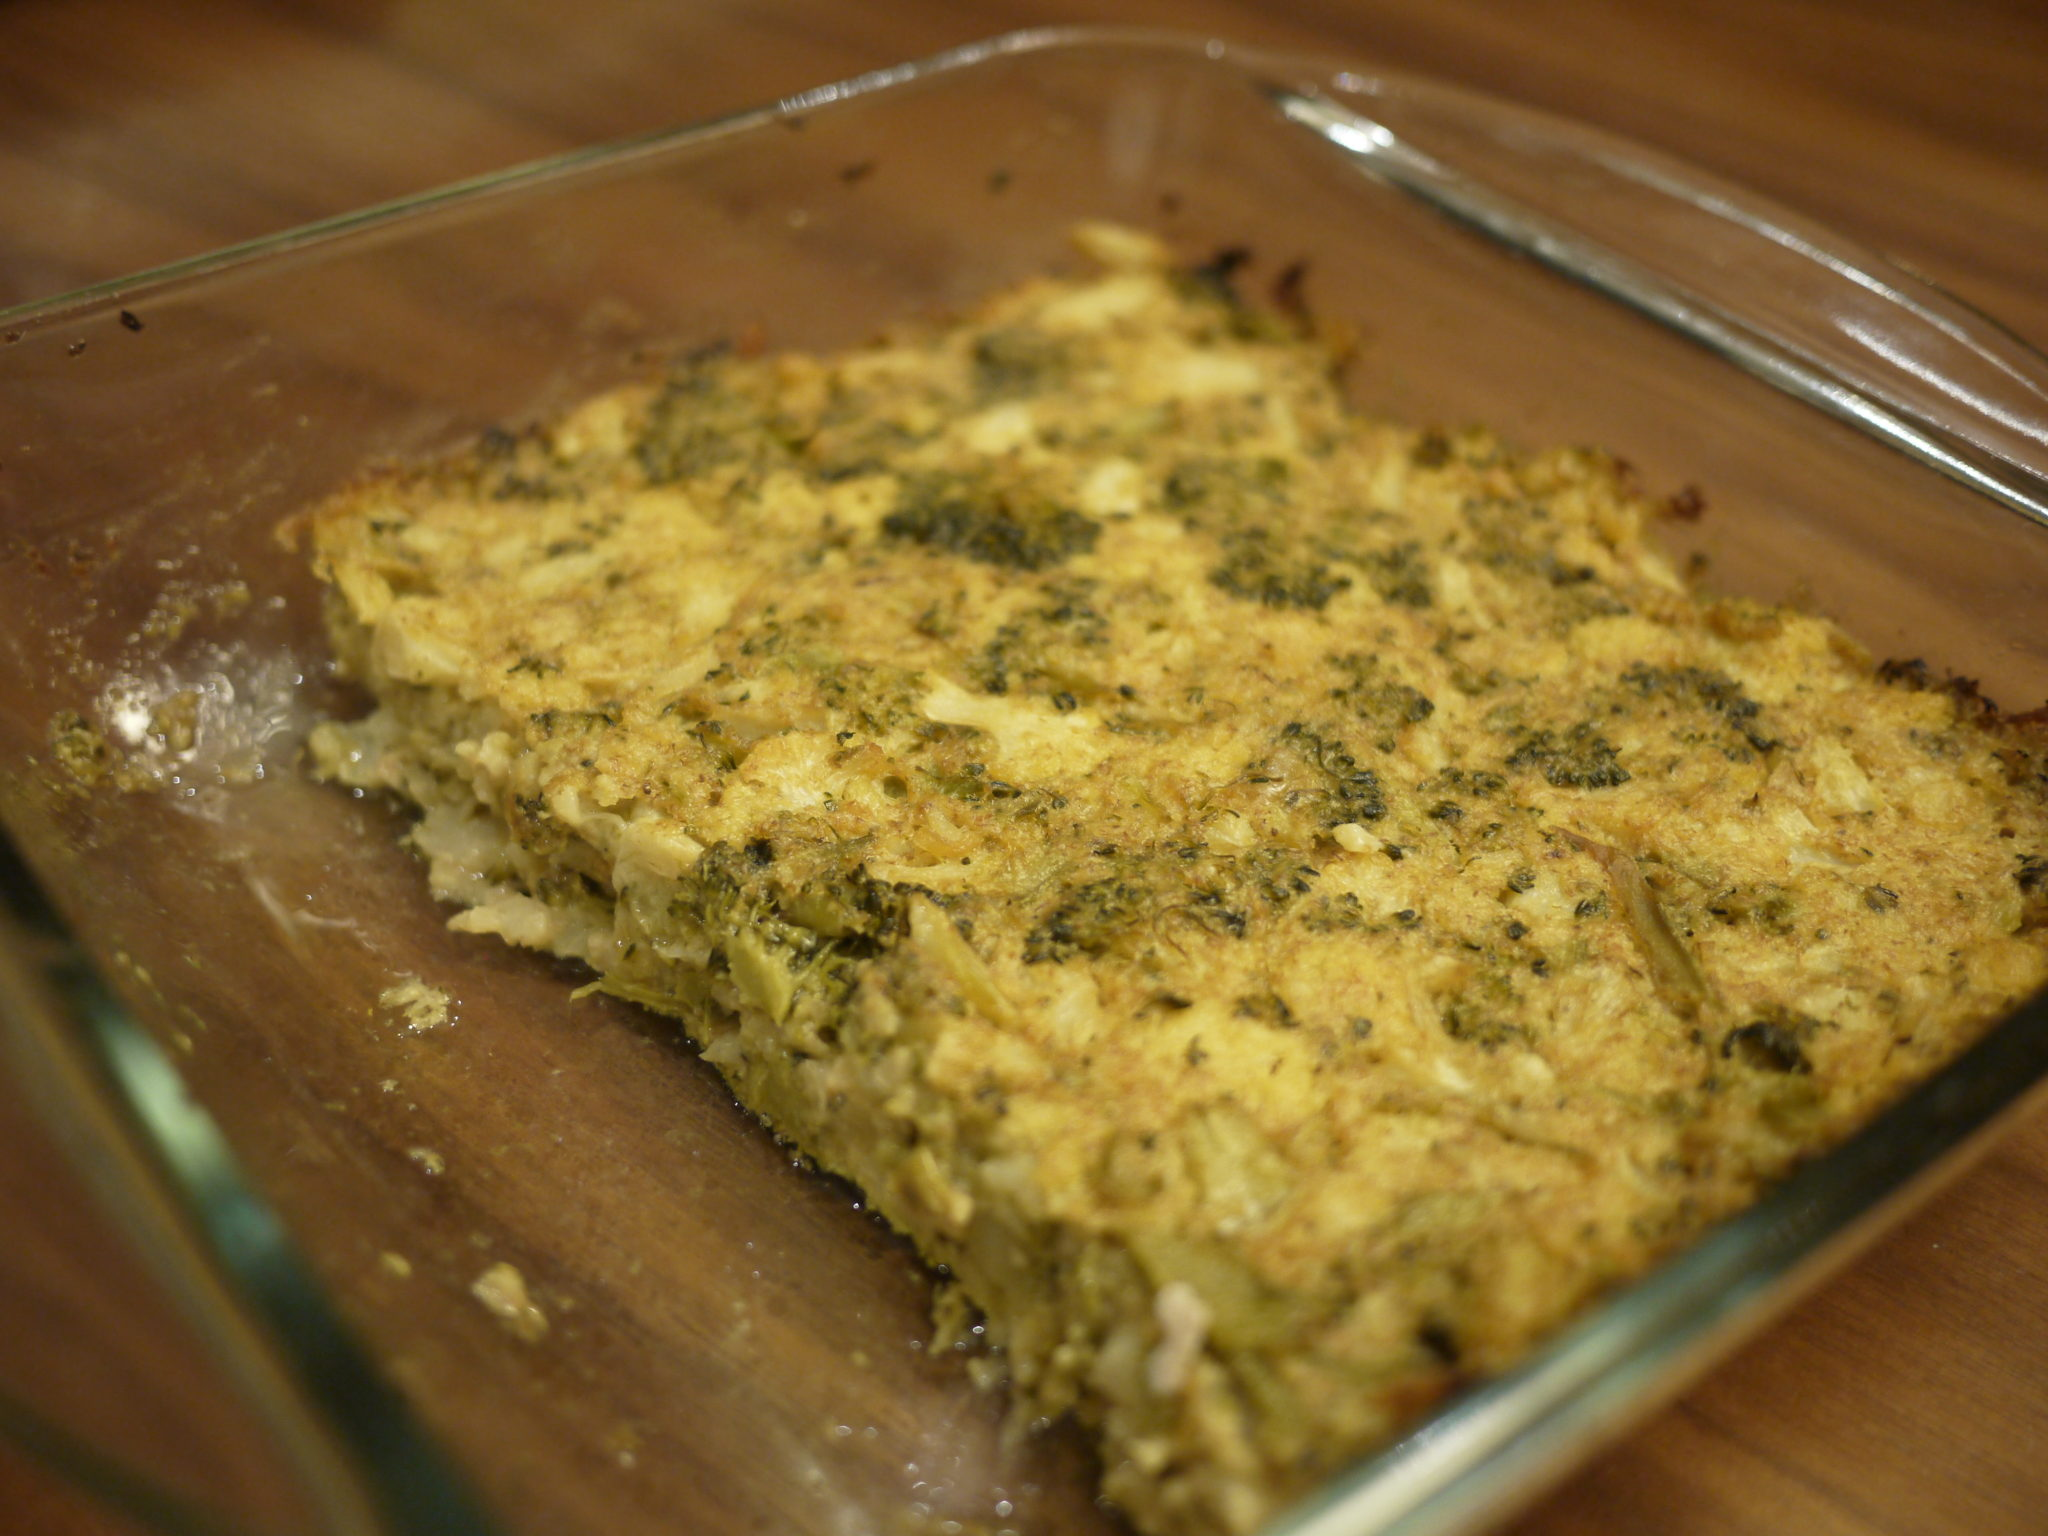 Cauliflower broccoli dairy-free casserole